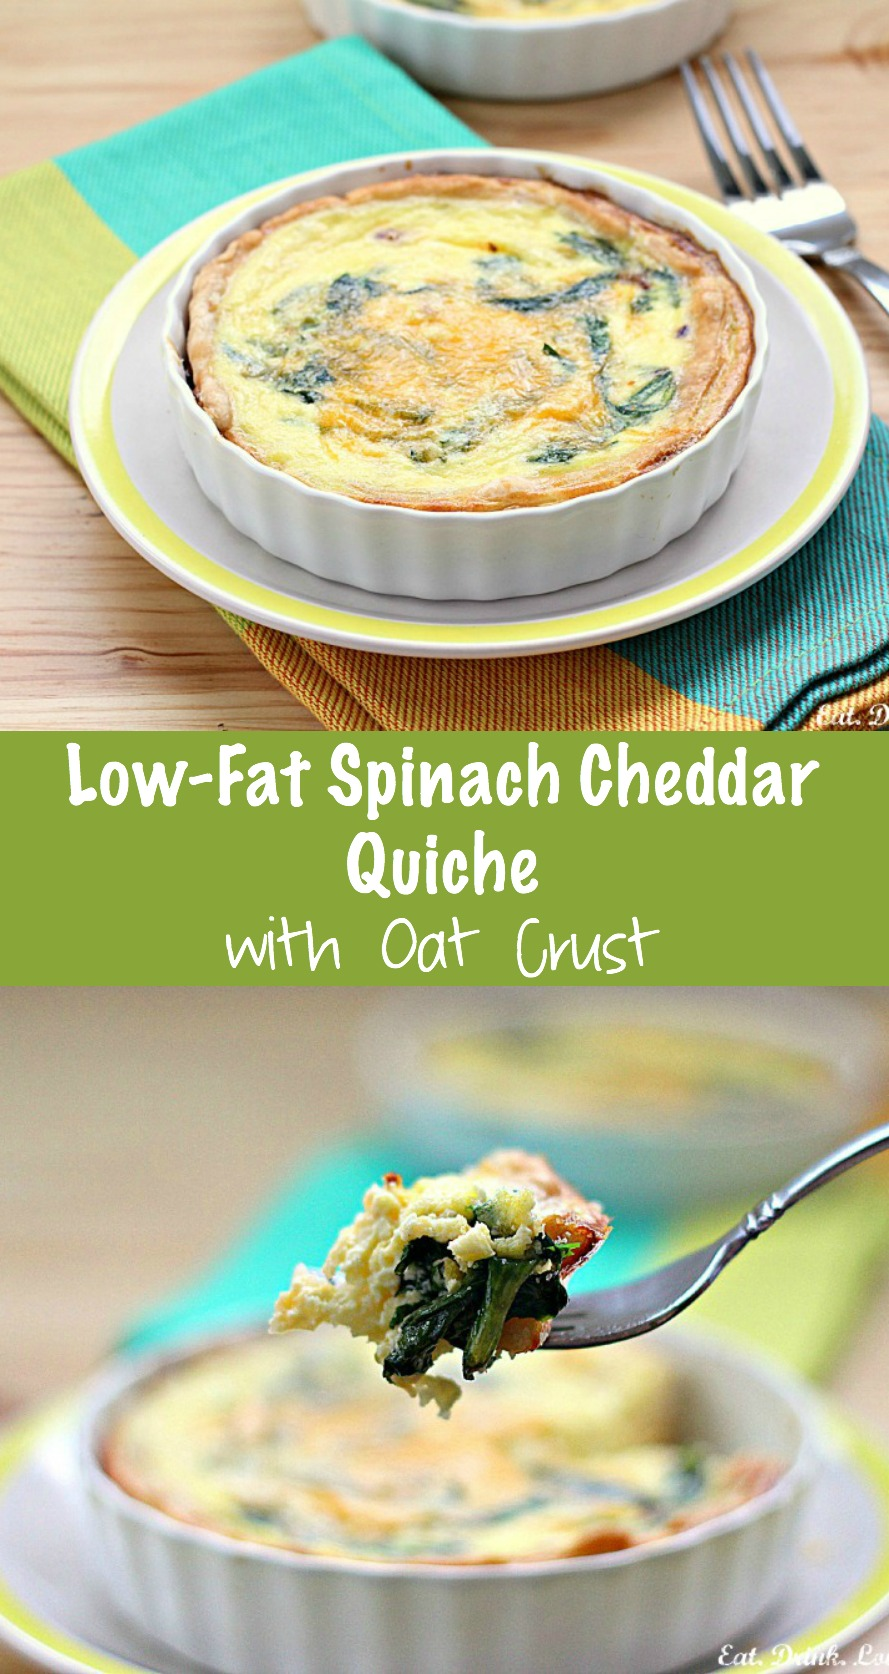 Low-Fat Spinach Cheddar Quiche